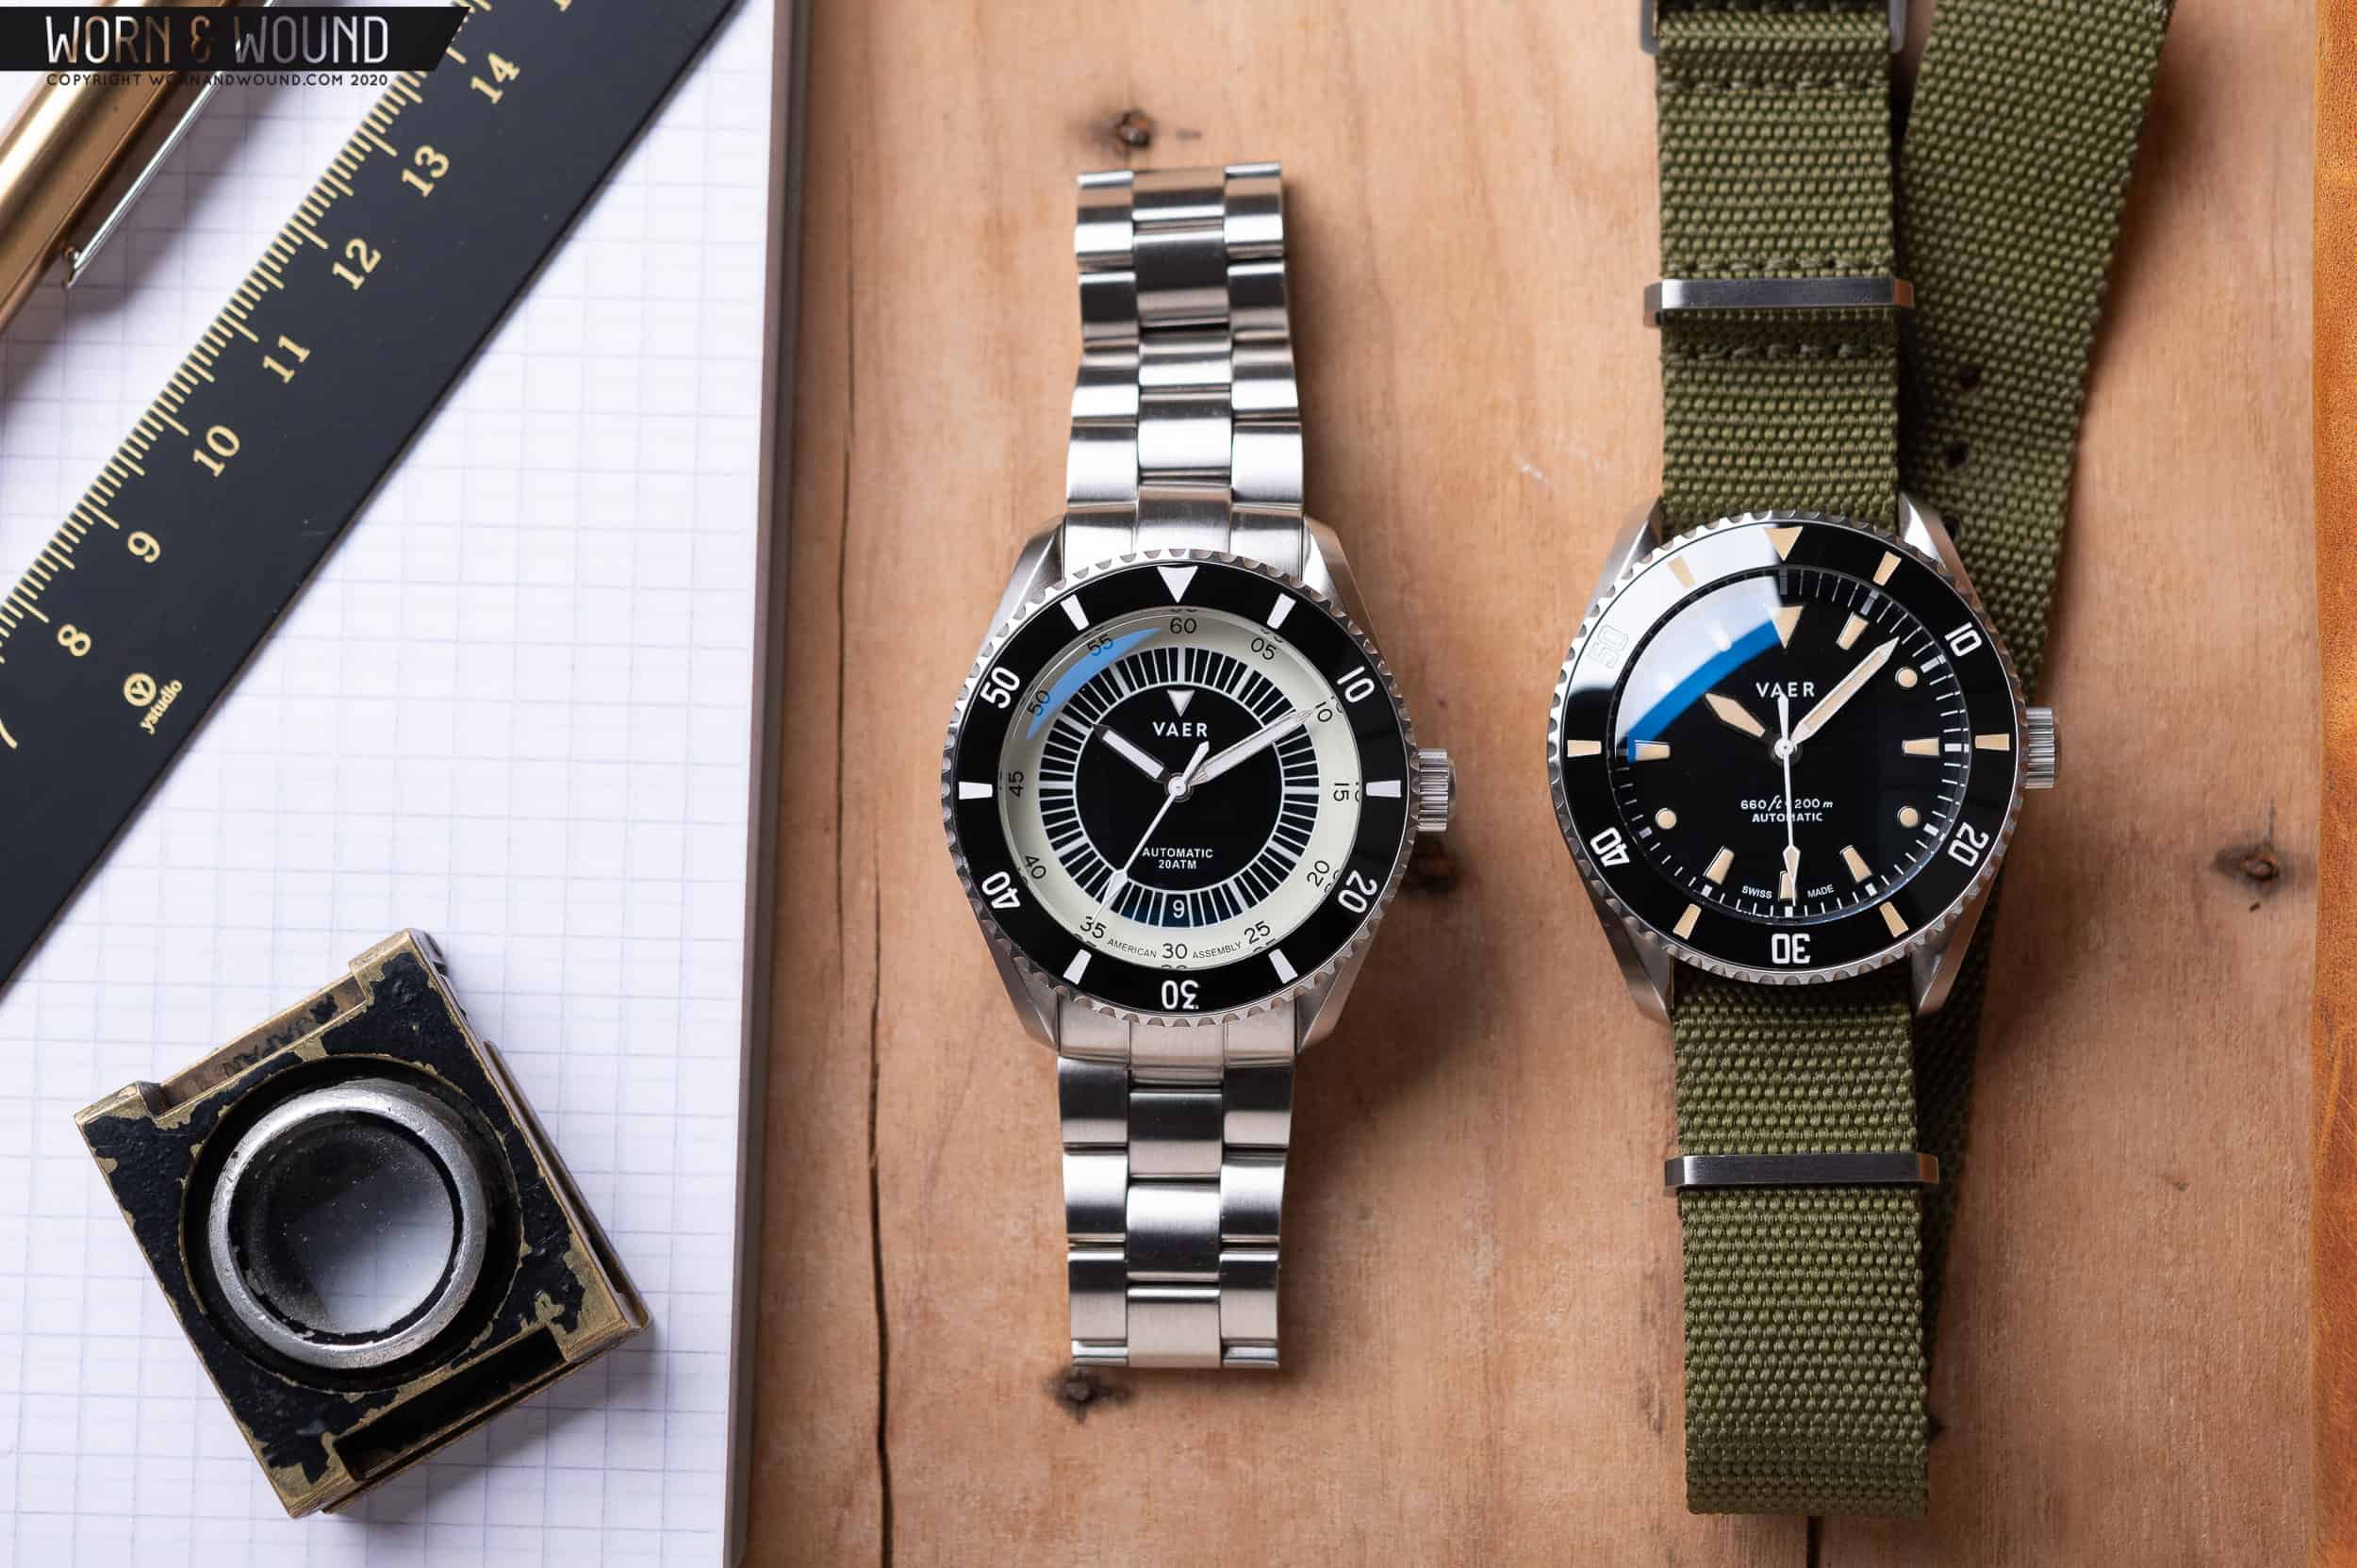 Hands On: VAER D Series Dive Watches